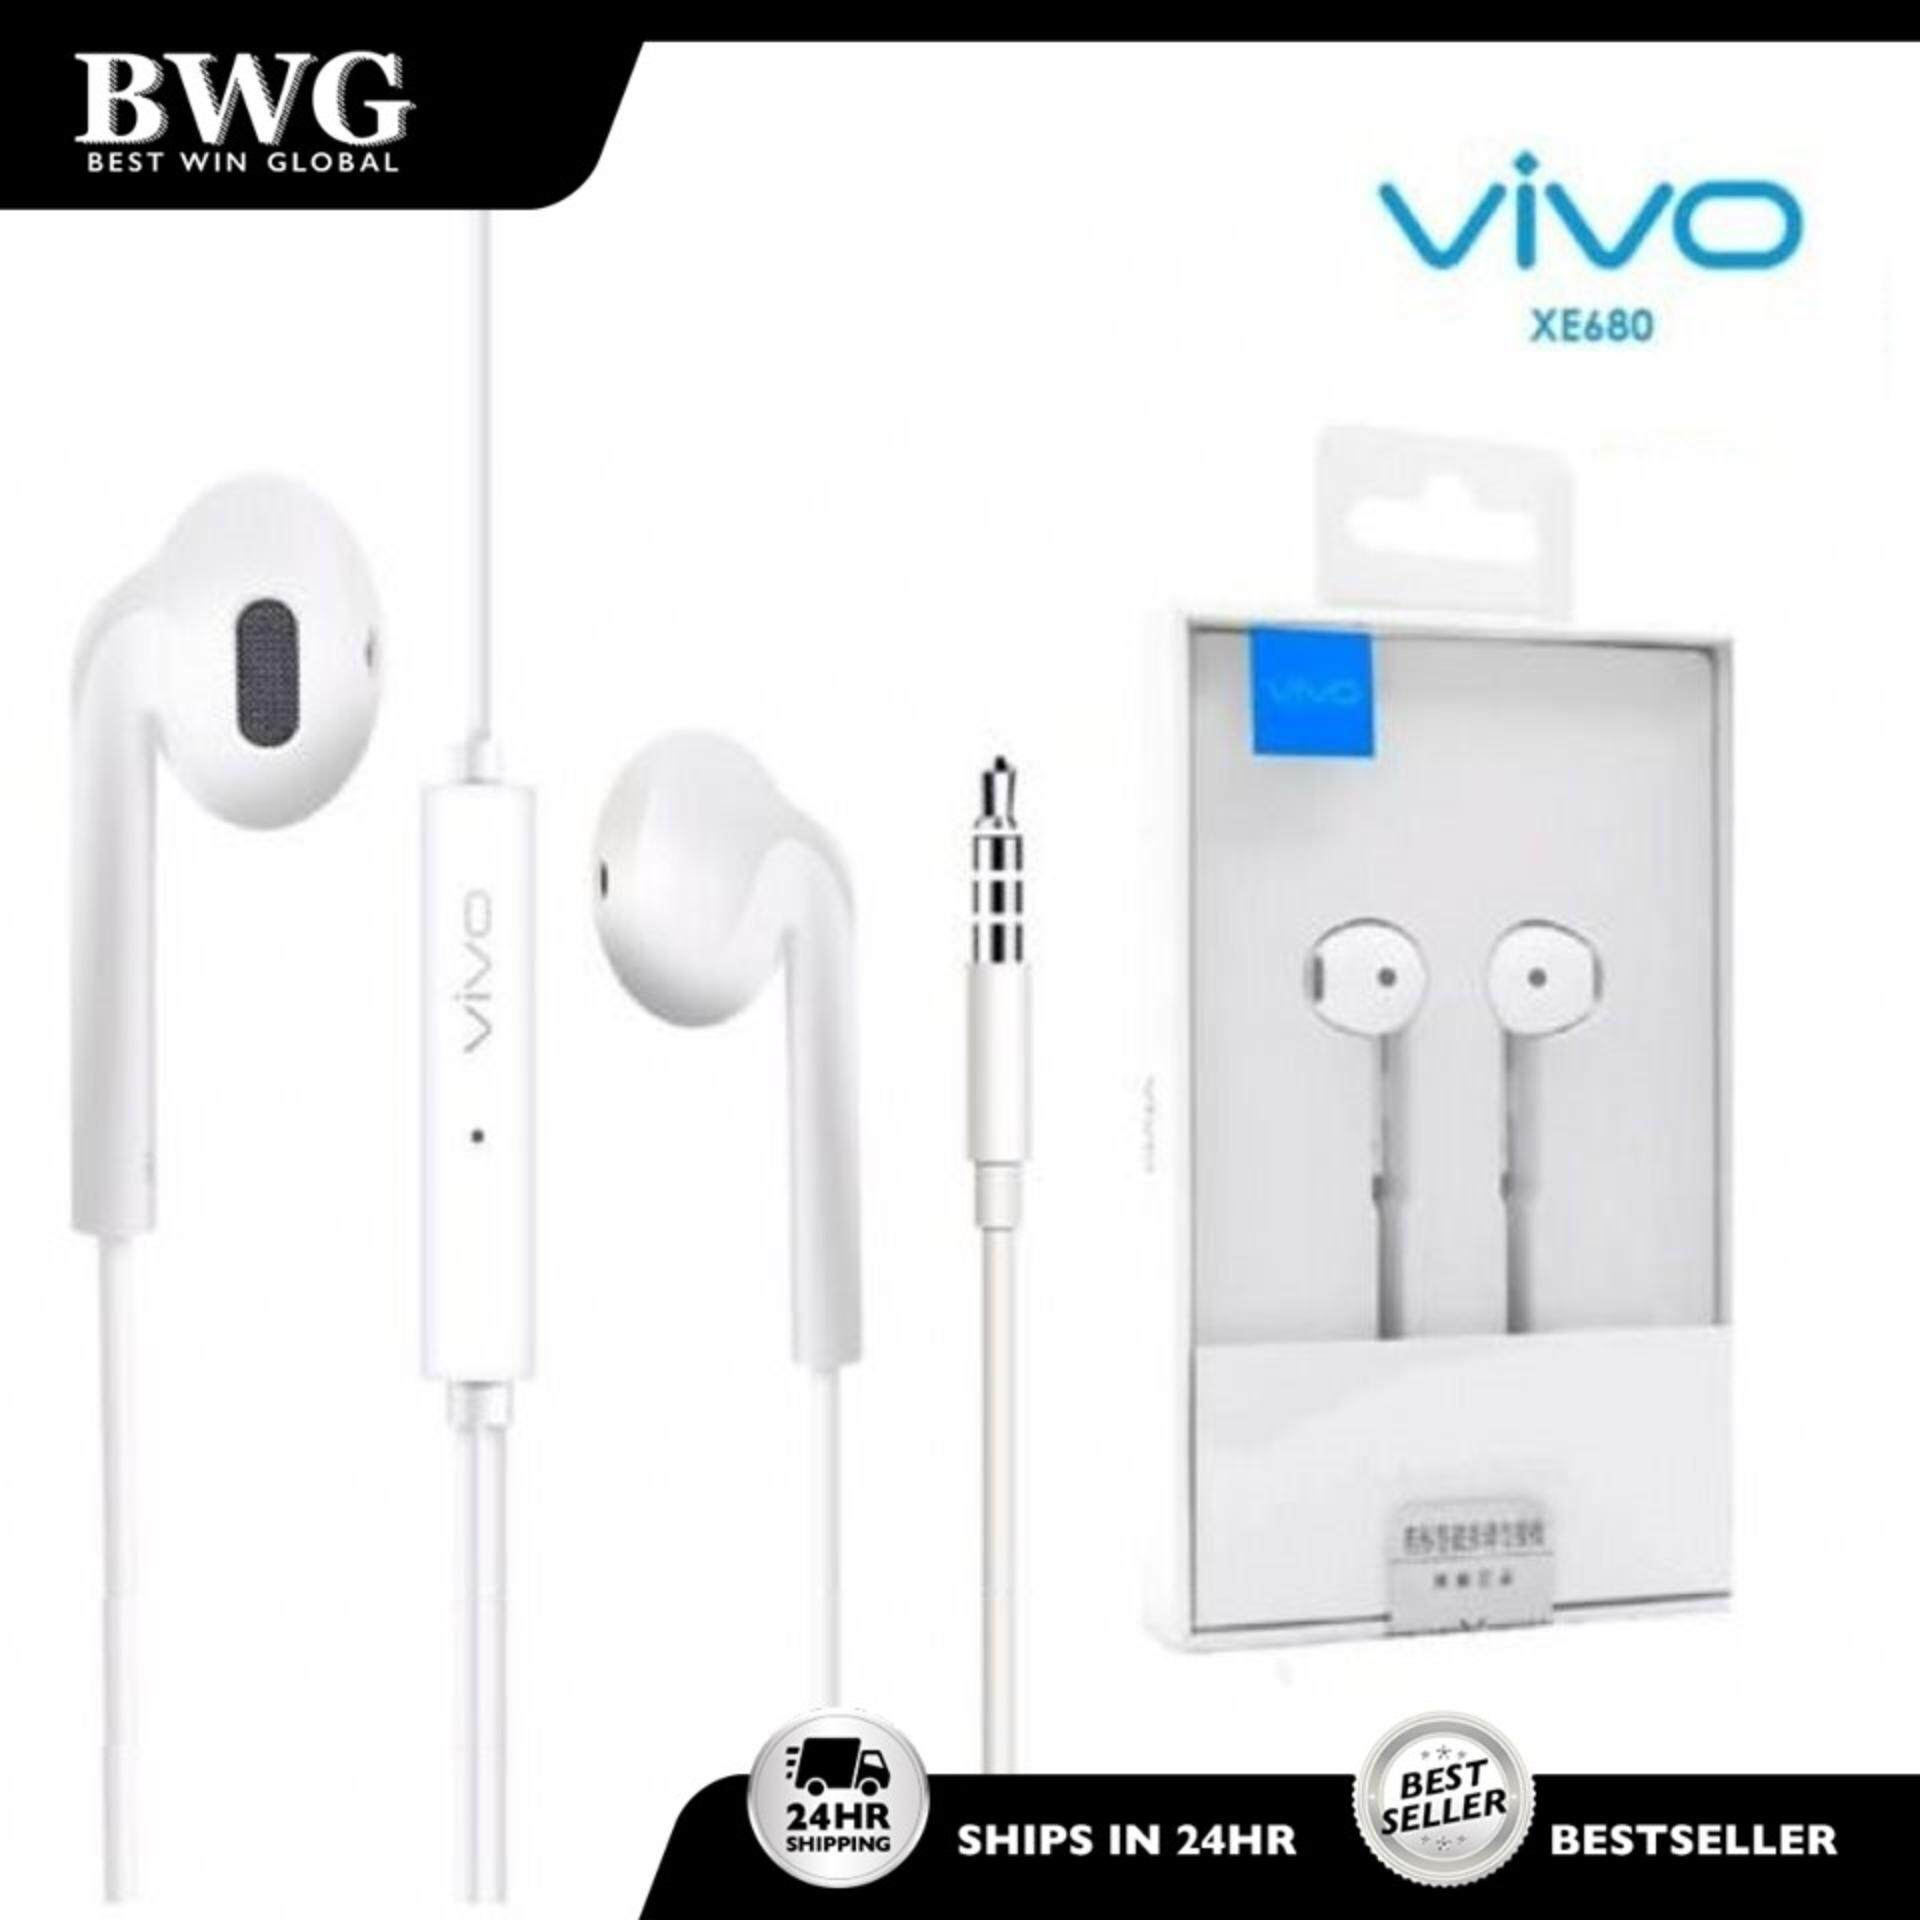 Original Vivo XE680 Ear Buds Wired Earphones With Mic